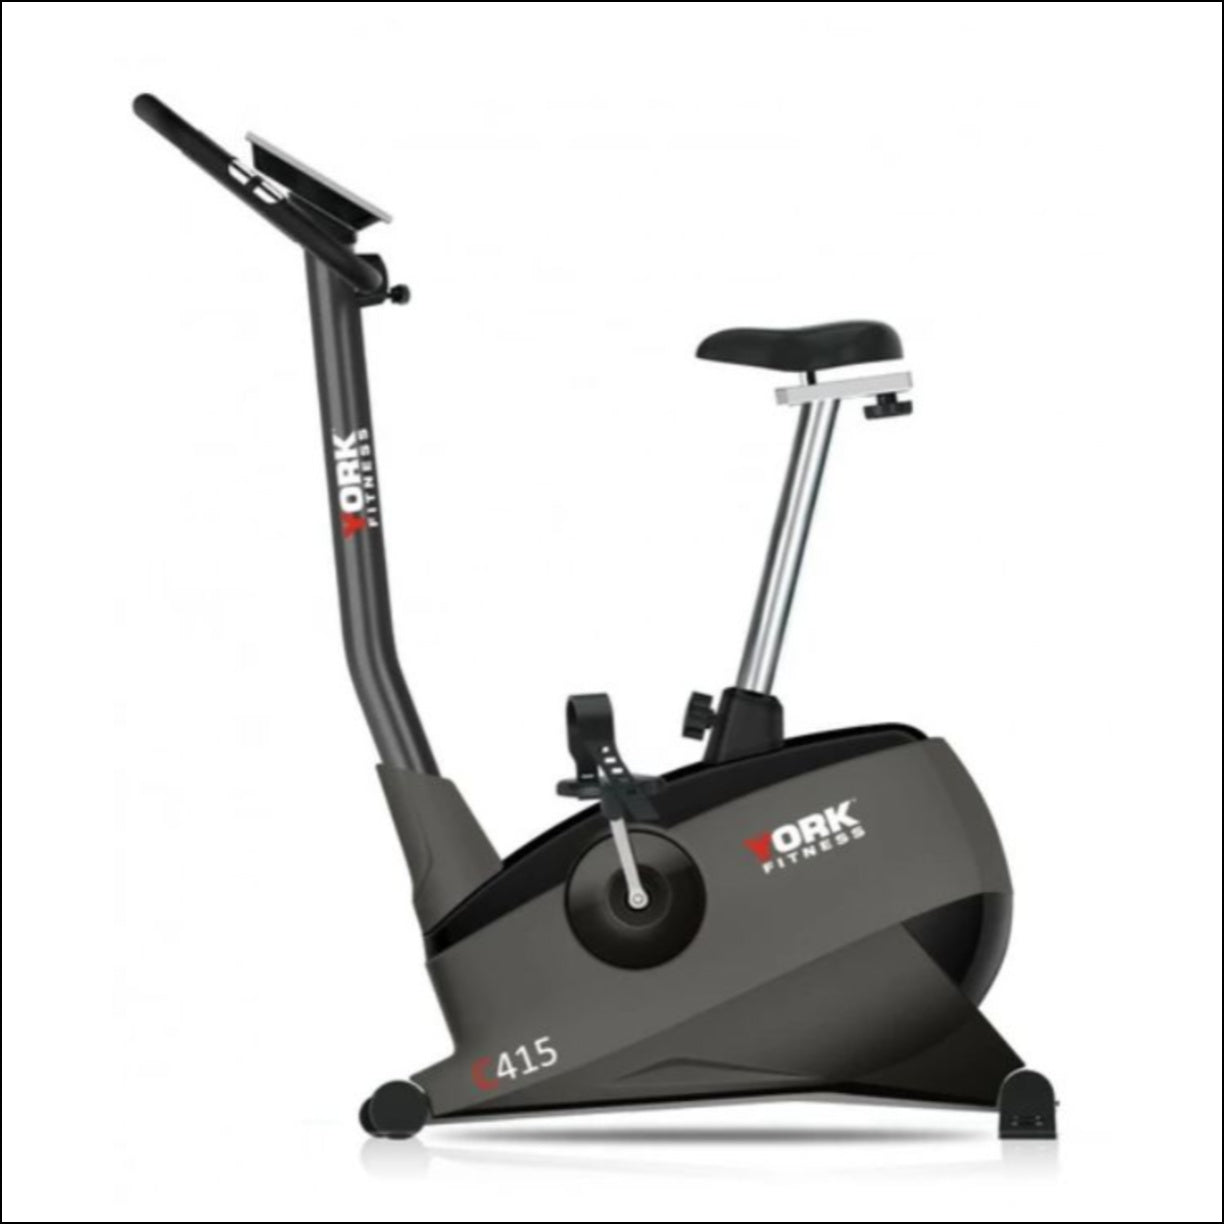 Spin Bikes Australia Directory listing The York C415 upright bike offers great value and is packed with many features. With it's large cushioned seat, rack and slide seat adjustment, stabilizers for uneven surfaces and wheel for easy transportation the C415 is perfect for home use.